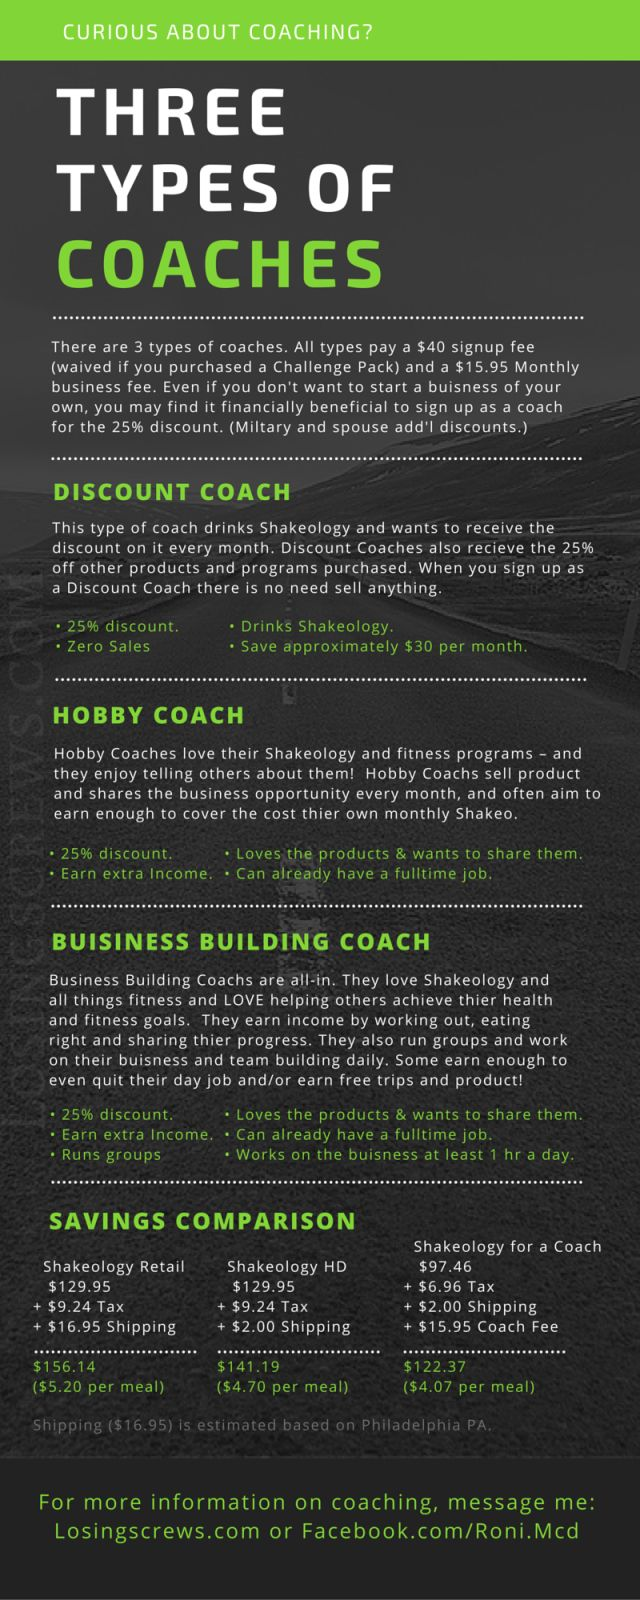 Curious about what it means to coach? Here are 3 types of Coaches explained…